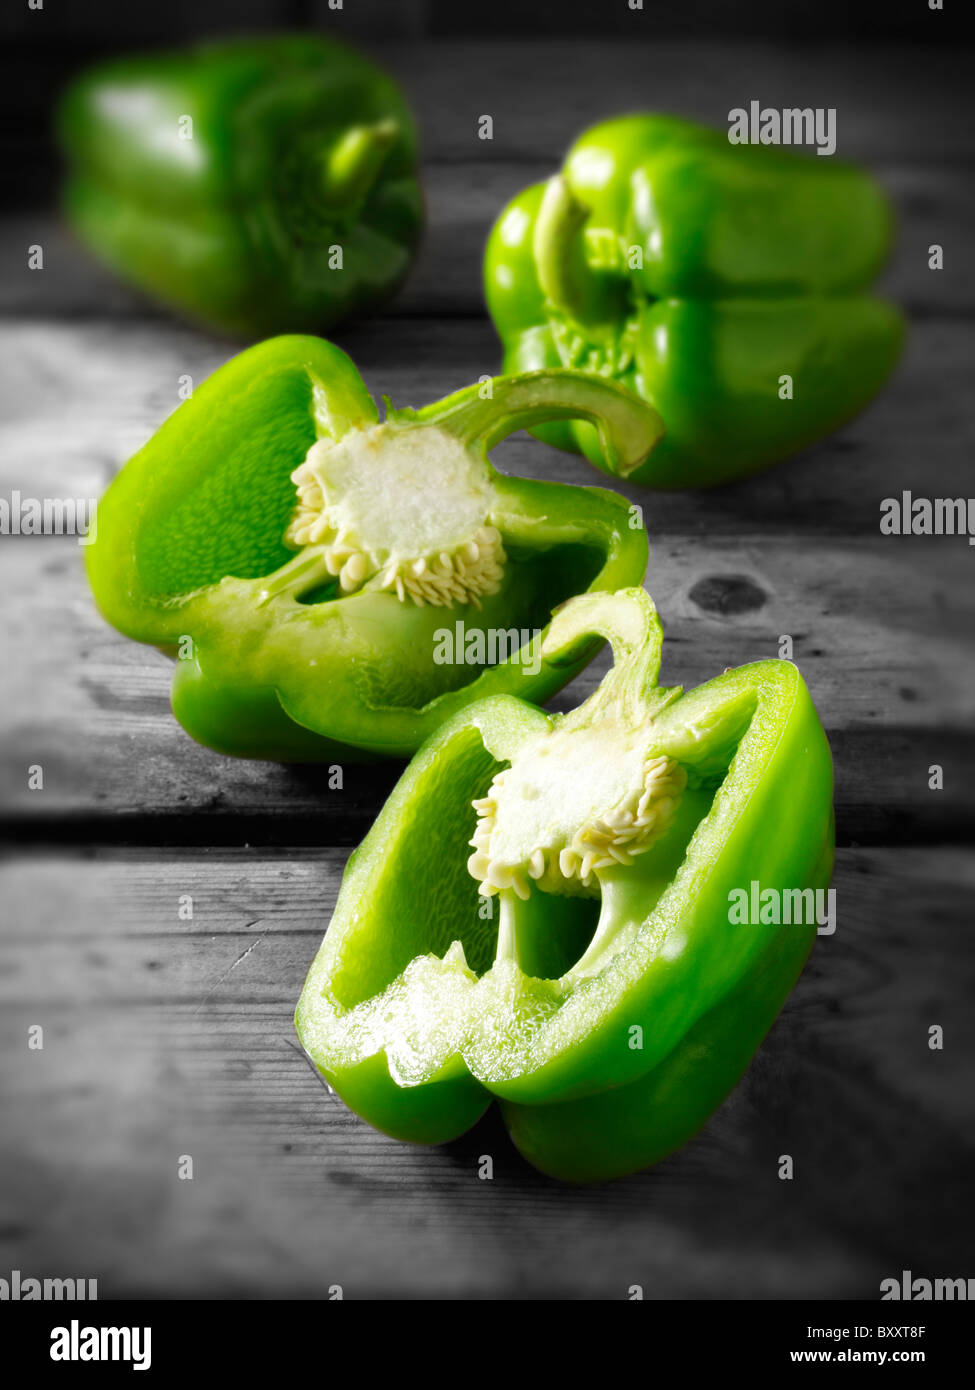 Green bell peppers photos, pictures & images - Stock Image